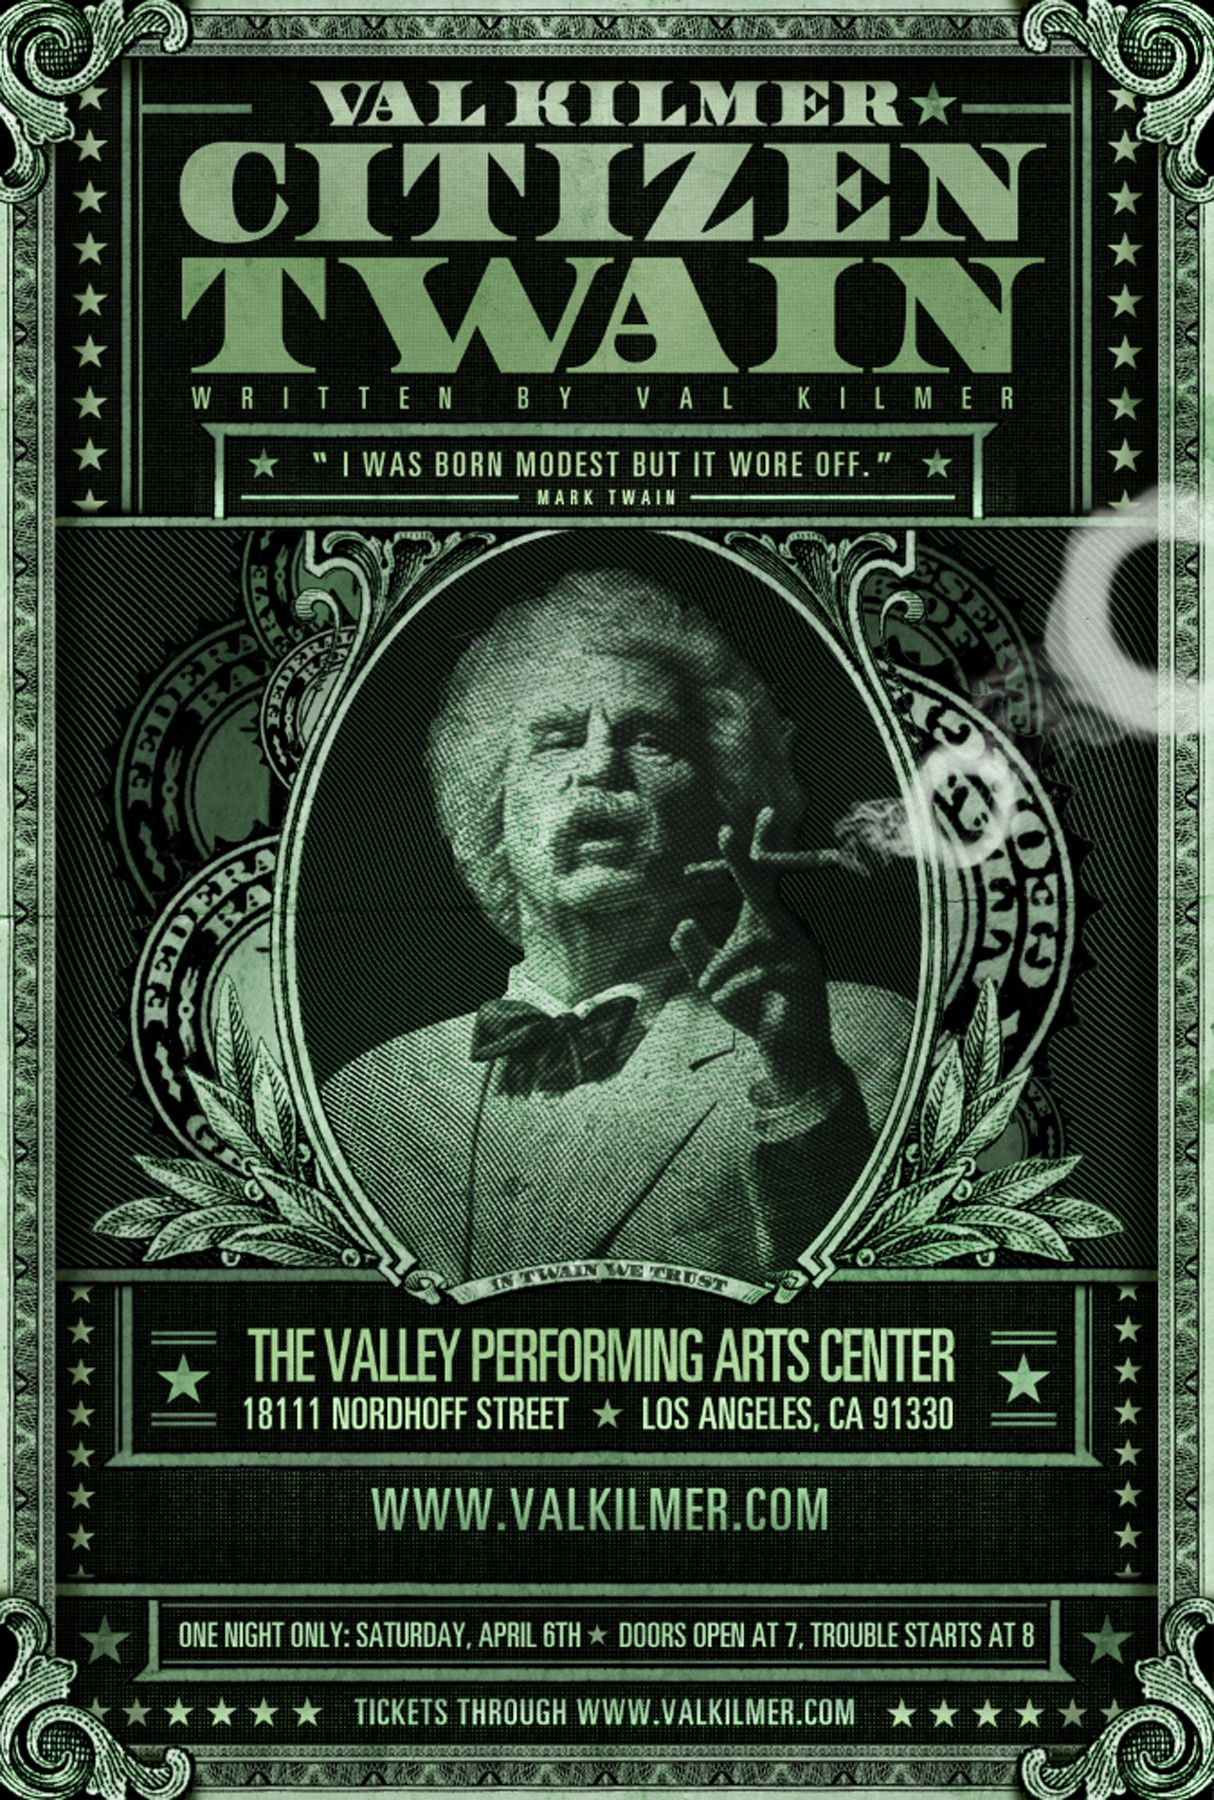 #LAThtr, #twain, $45, Citizen Twain, Events, Highbrow, Humor, Los Angeles, Mark Twain, Solo Performance, Theater, Val Kilmer, Valley Performing Arts Center